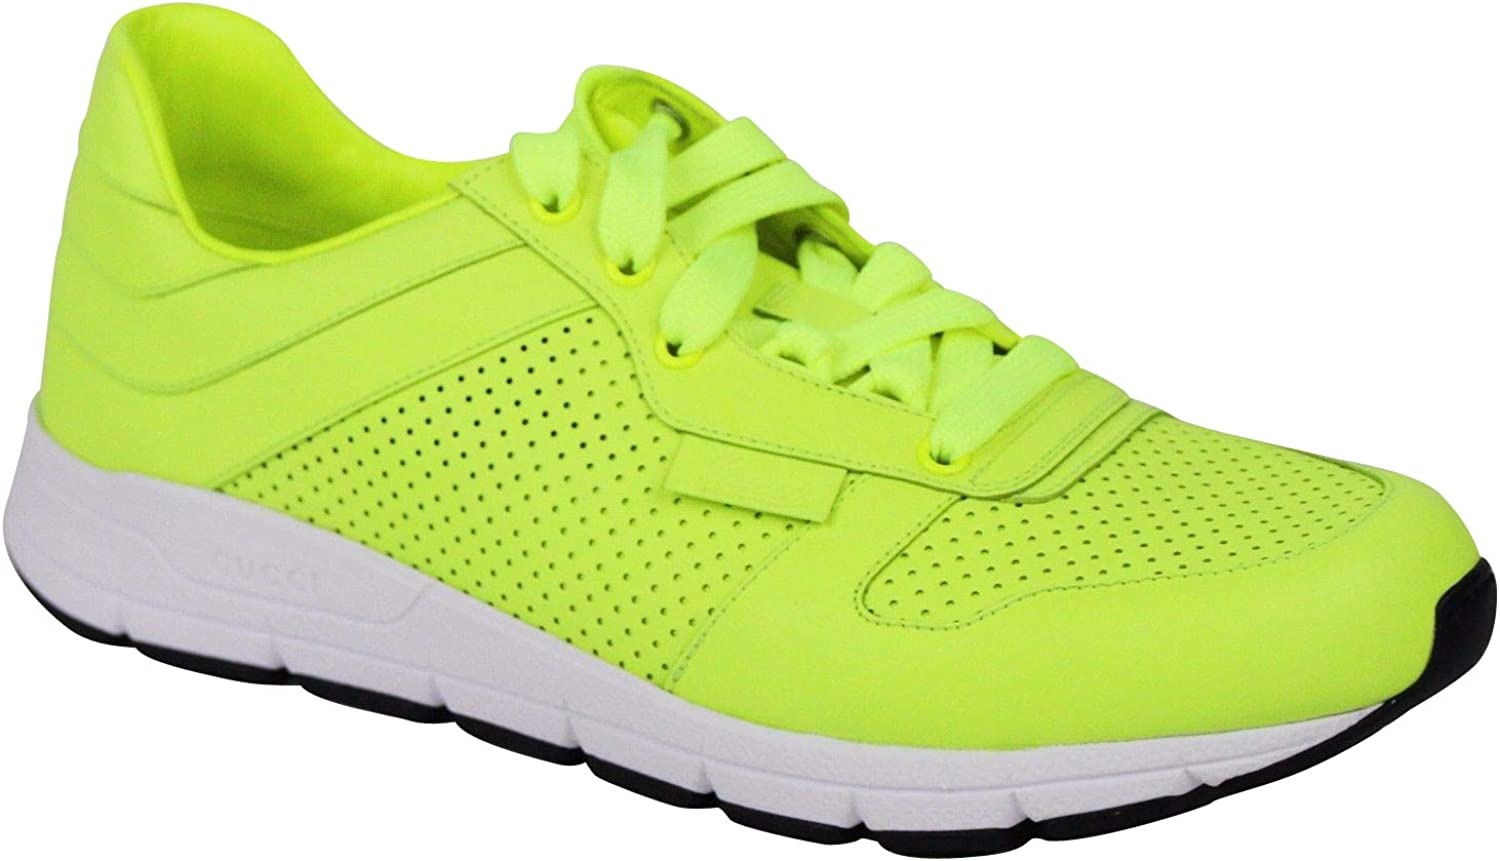 Gucci Men's Lace up Neon Yellow Leather